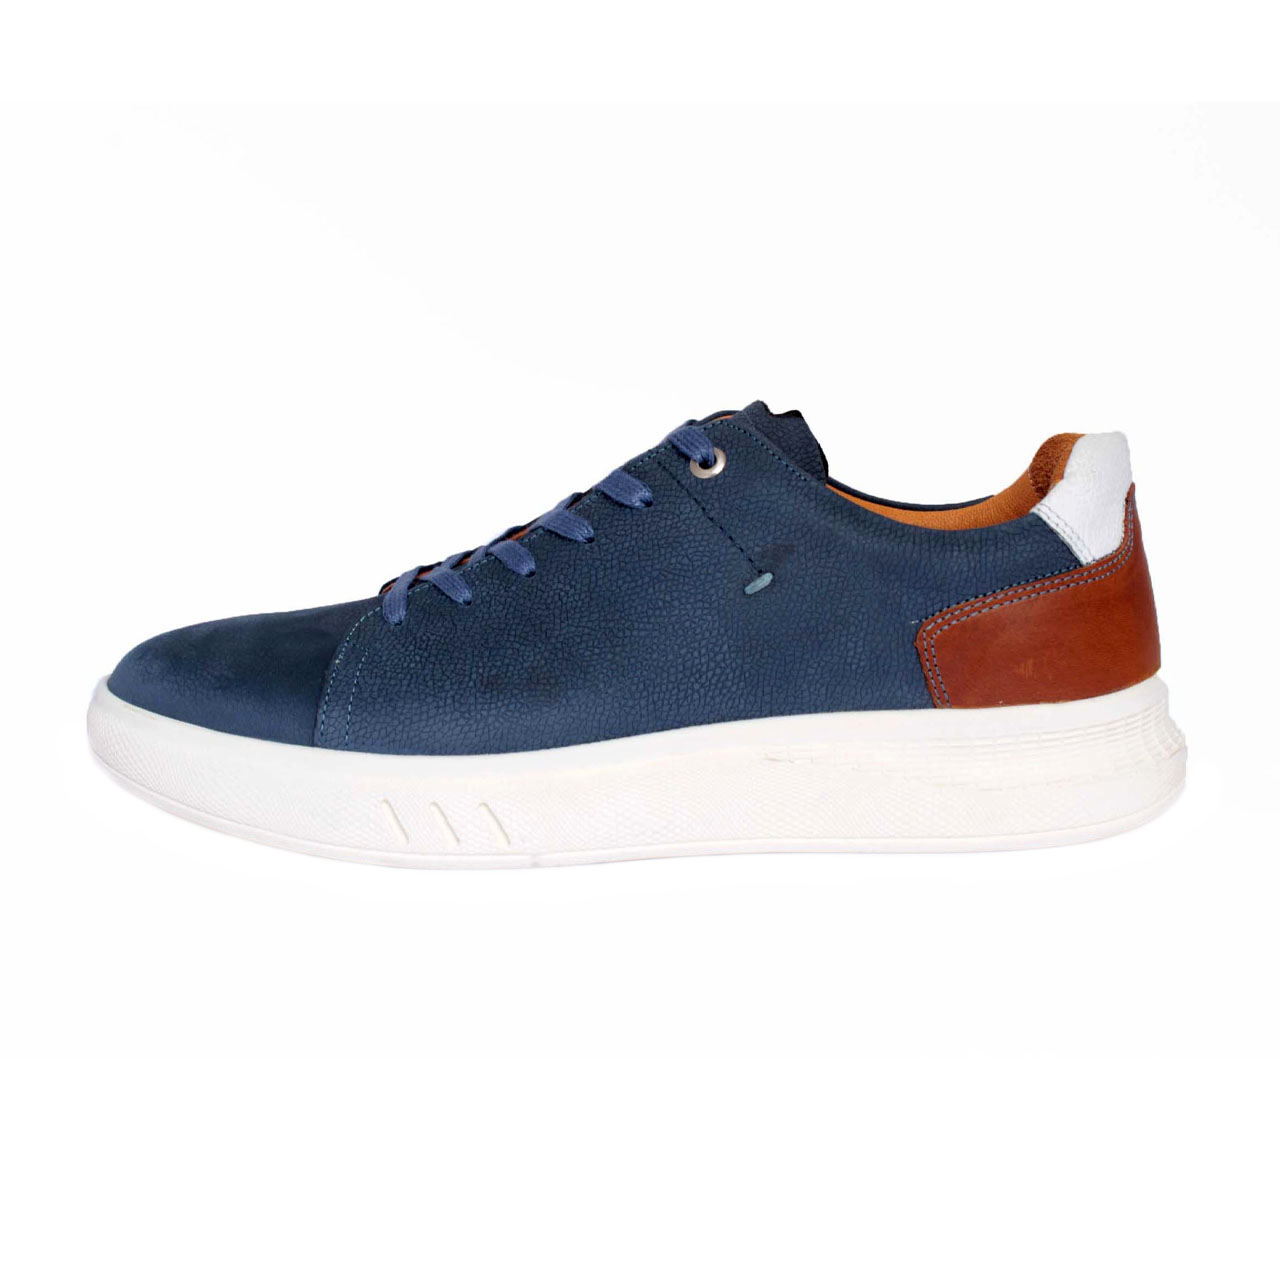 SAINACHARM leather men's shoes, M110 blue Model